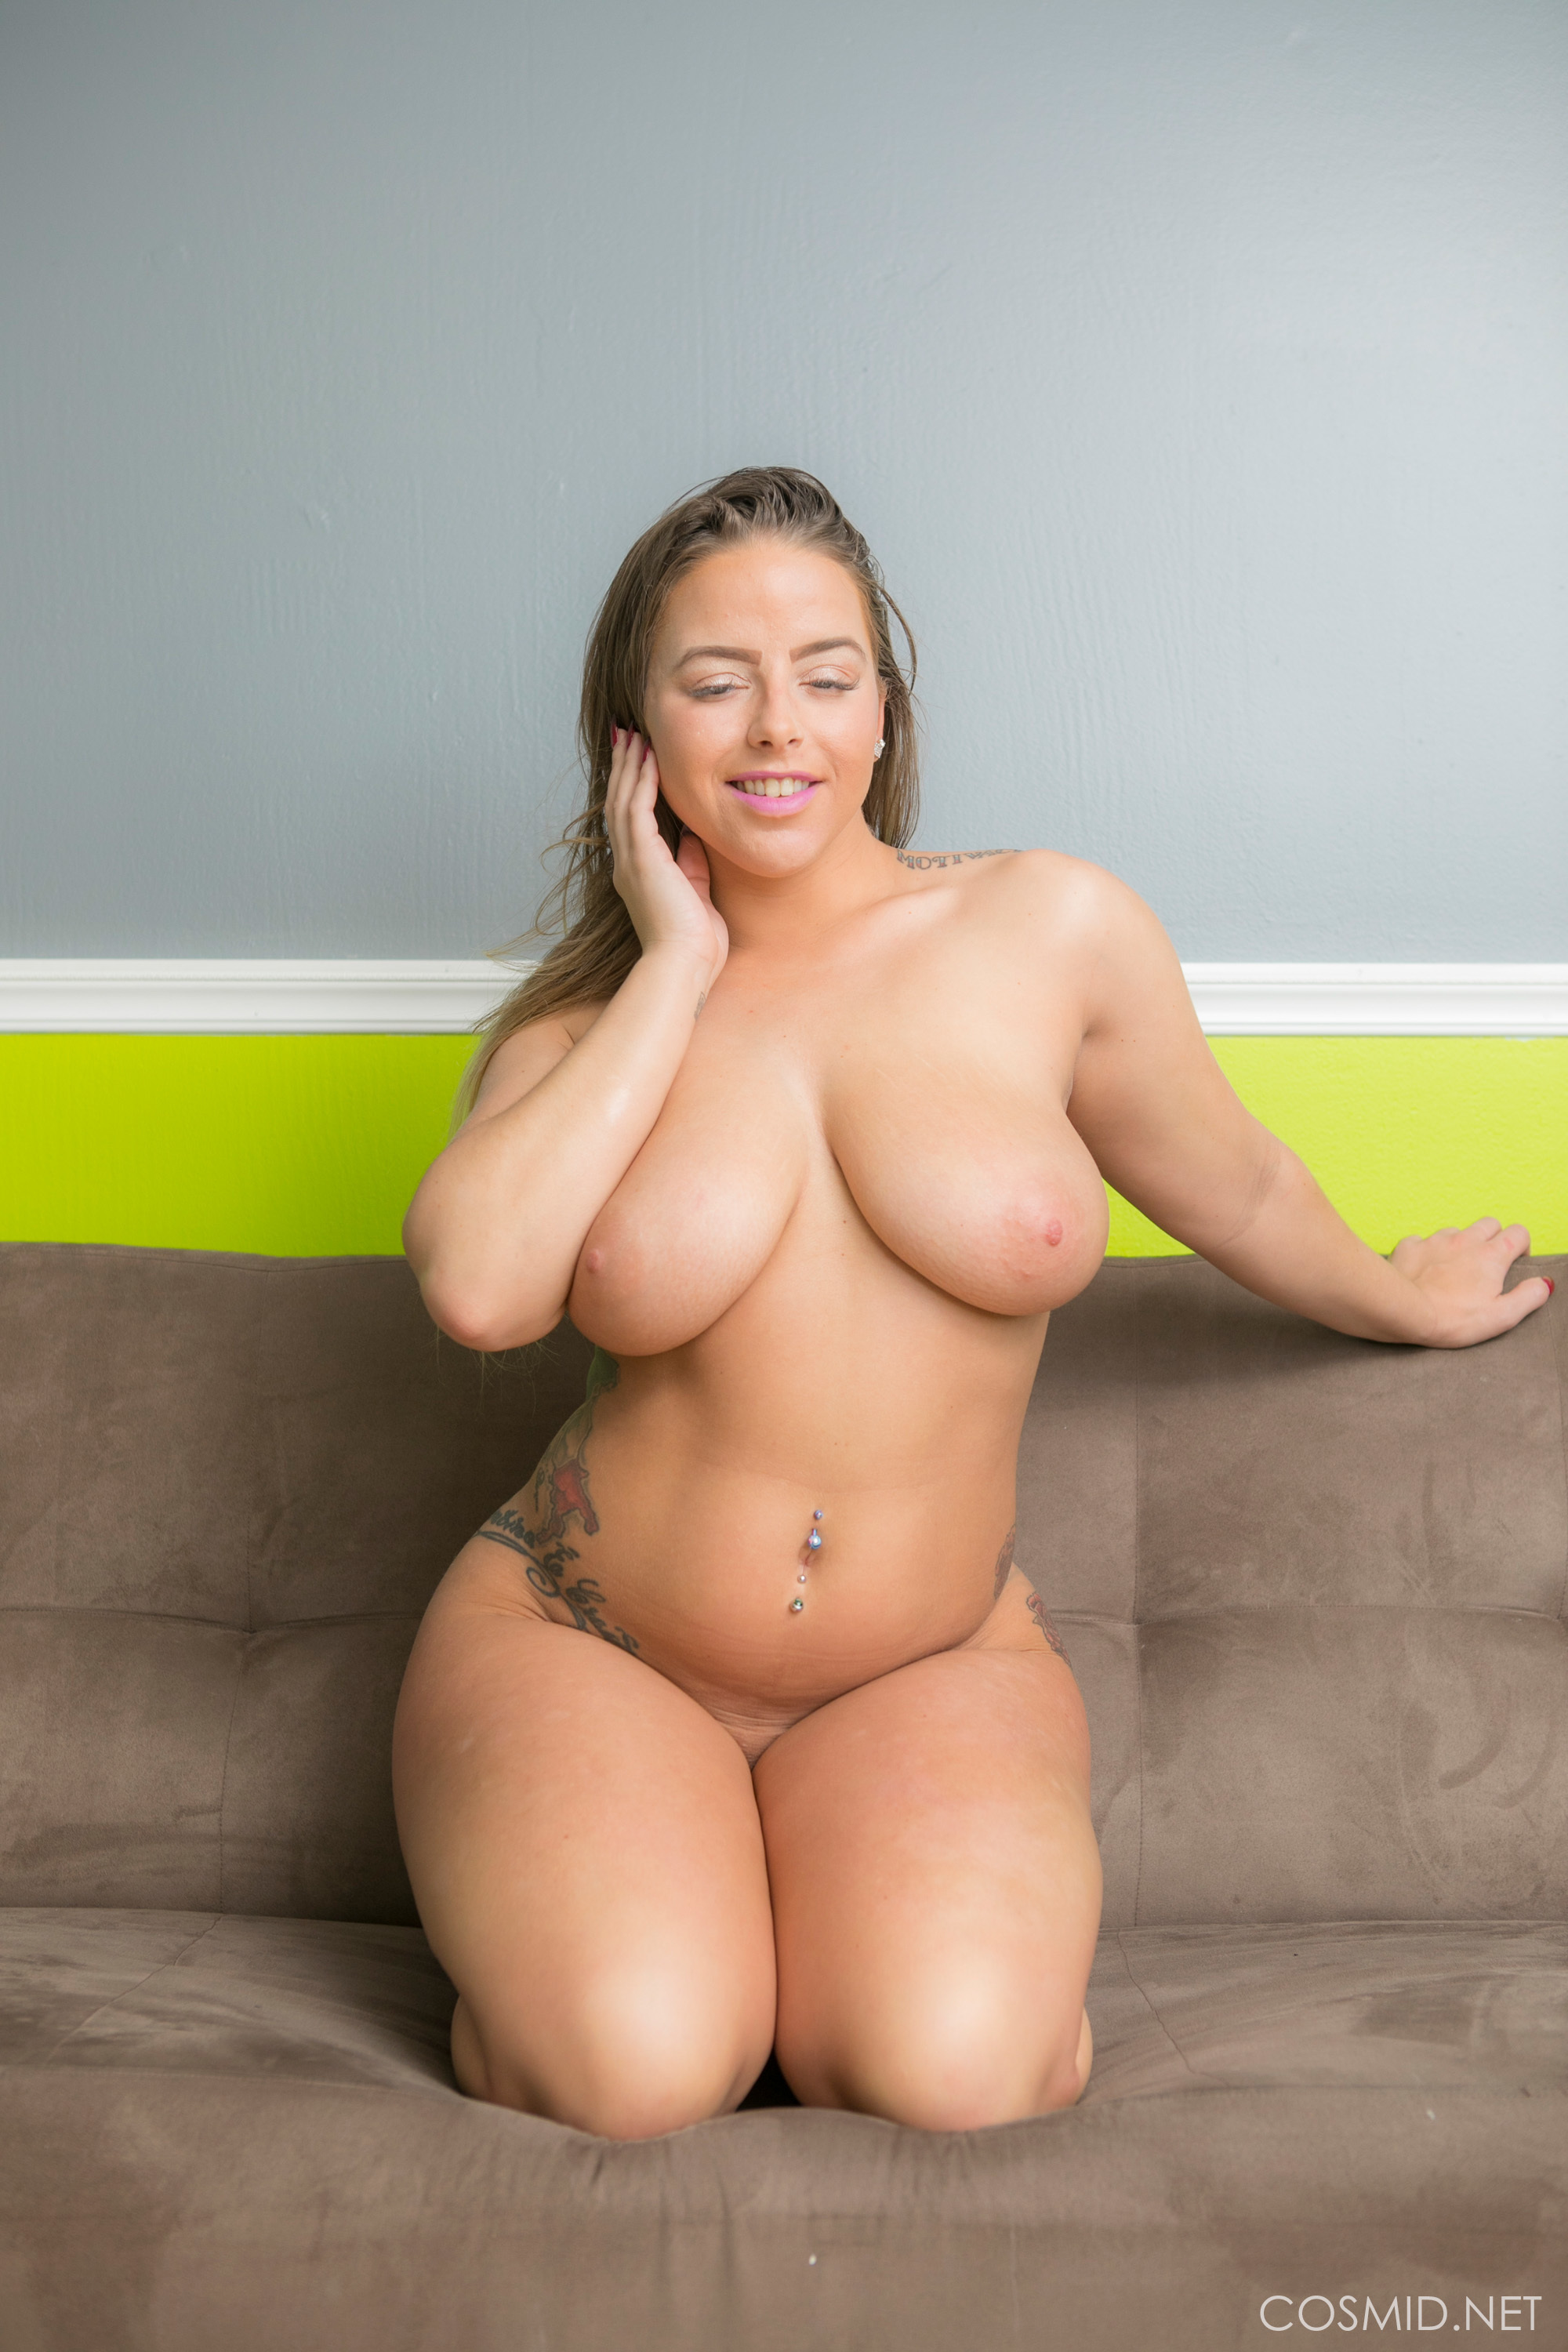 Chubby brunette with tattoos shows off her big tits at ...